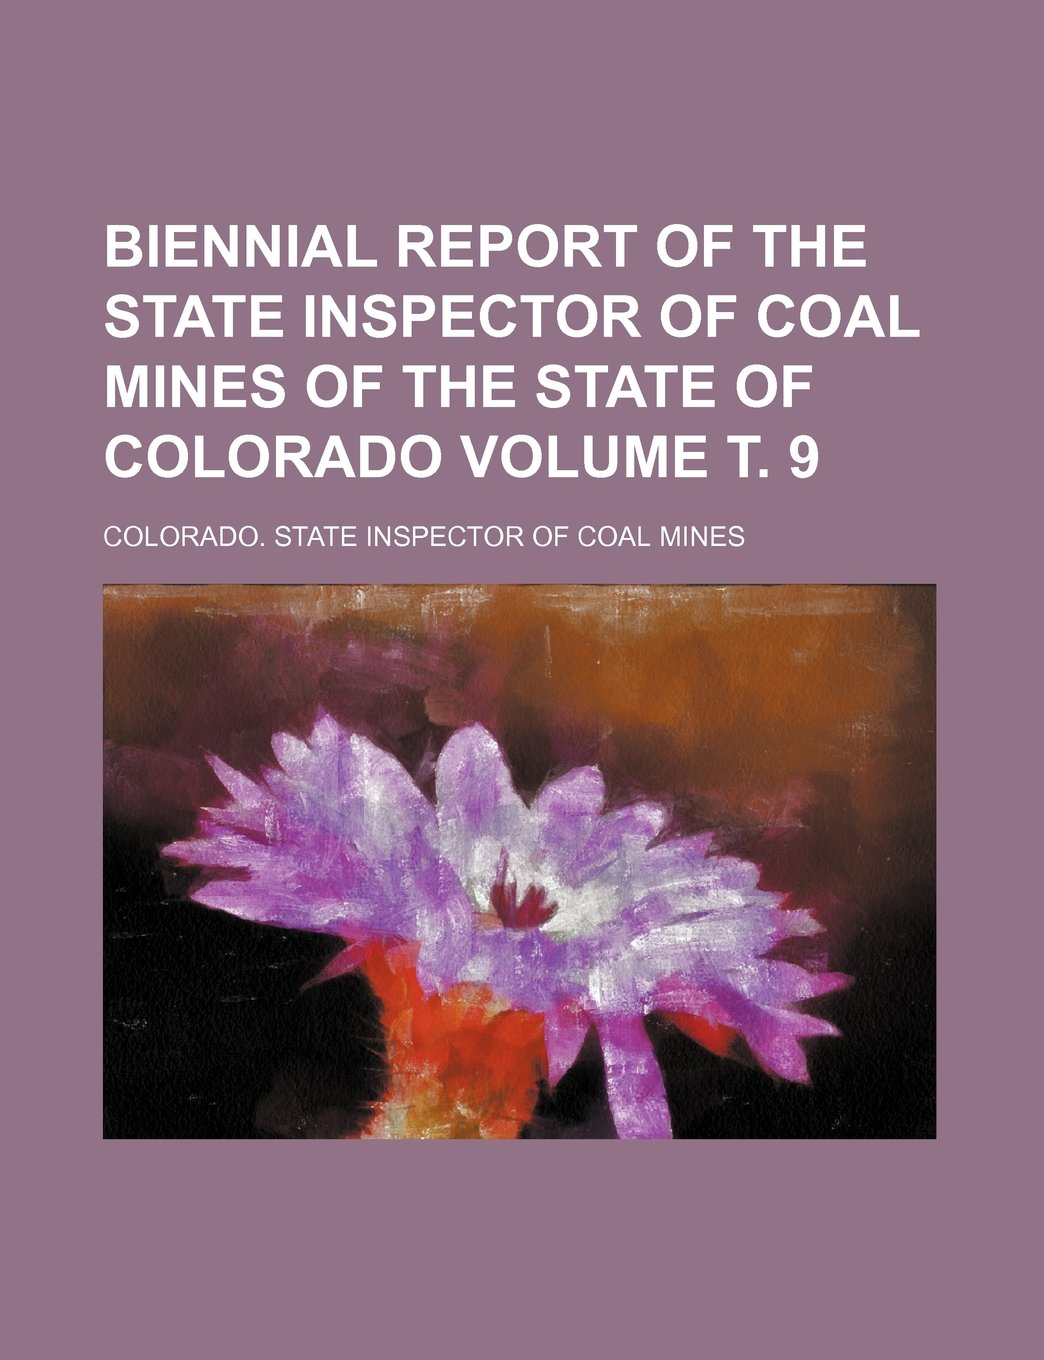 Biennial report of the state inspector of coal mines of the state of Colorado Volume т. 9 PDF